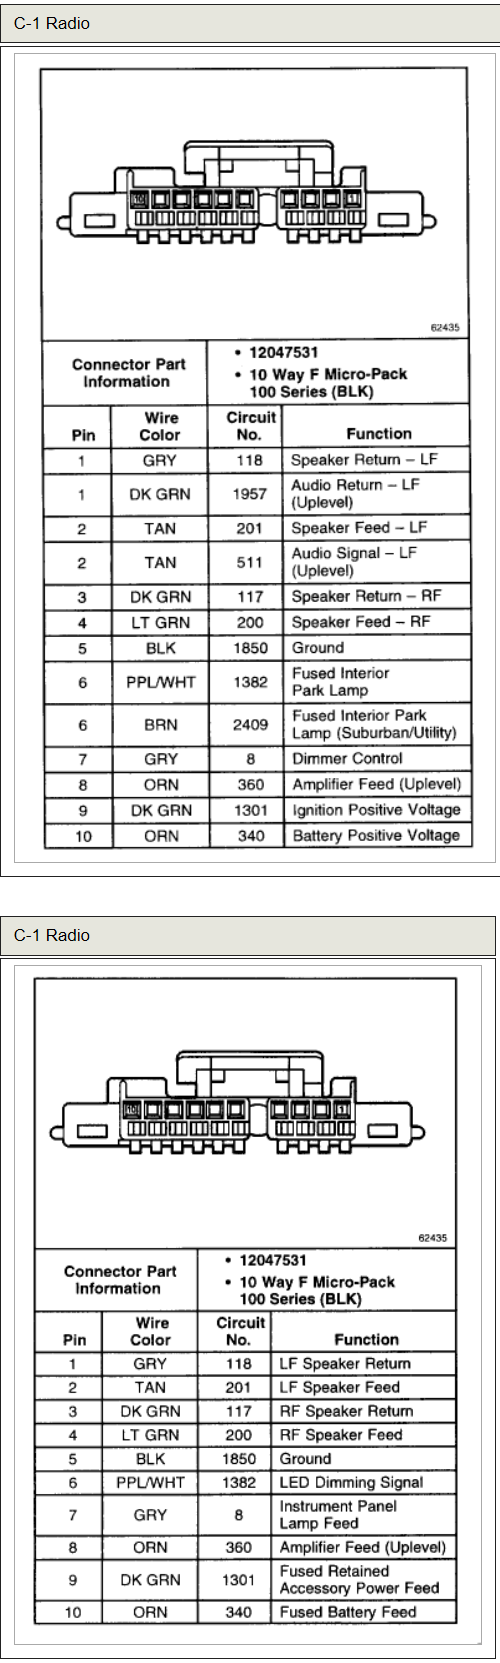 Tahoe radio wiring wiring diagram chevrolet car radio stereo audio wiring diagram autoradio connector 2001 chevrolet tahoe radio wiring chevrolet car swarovskicordoba Gallery